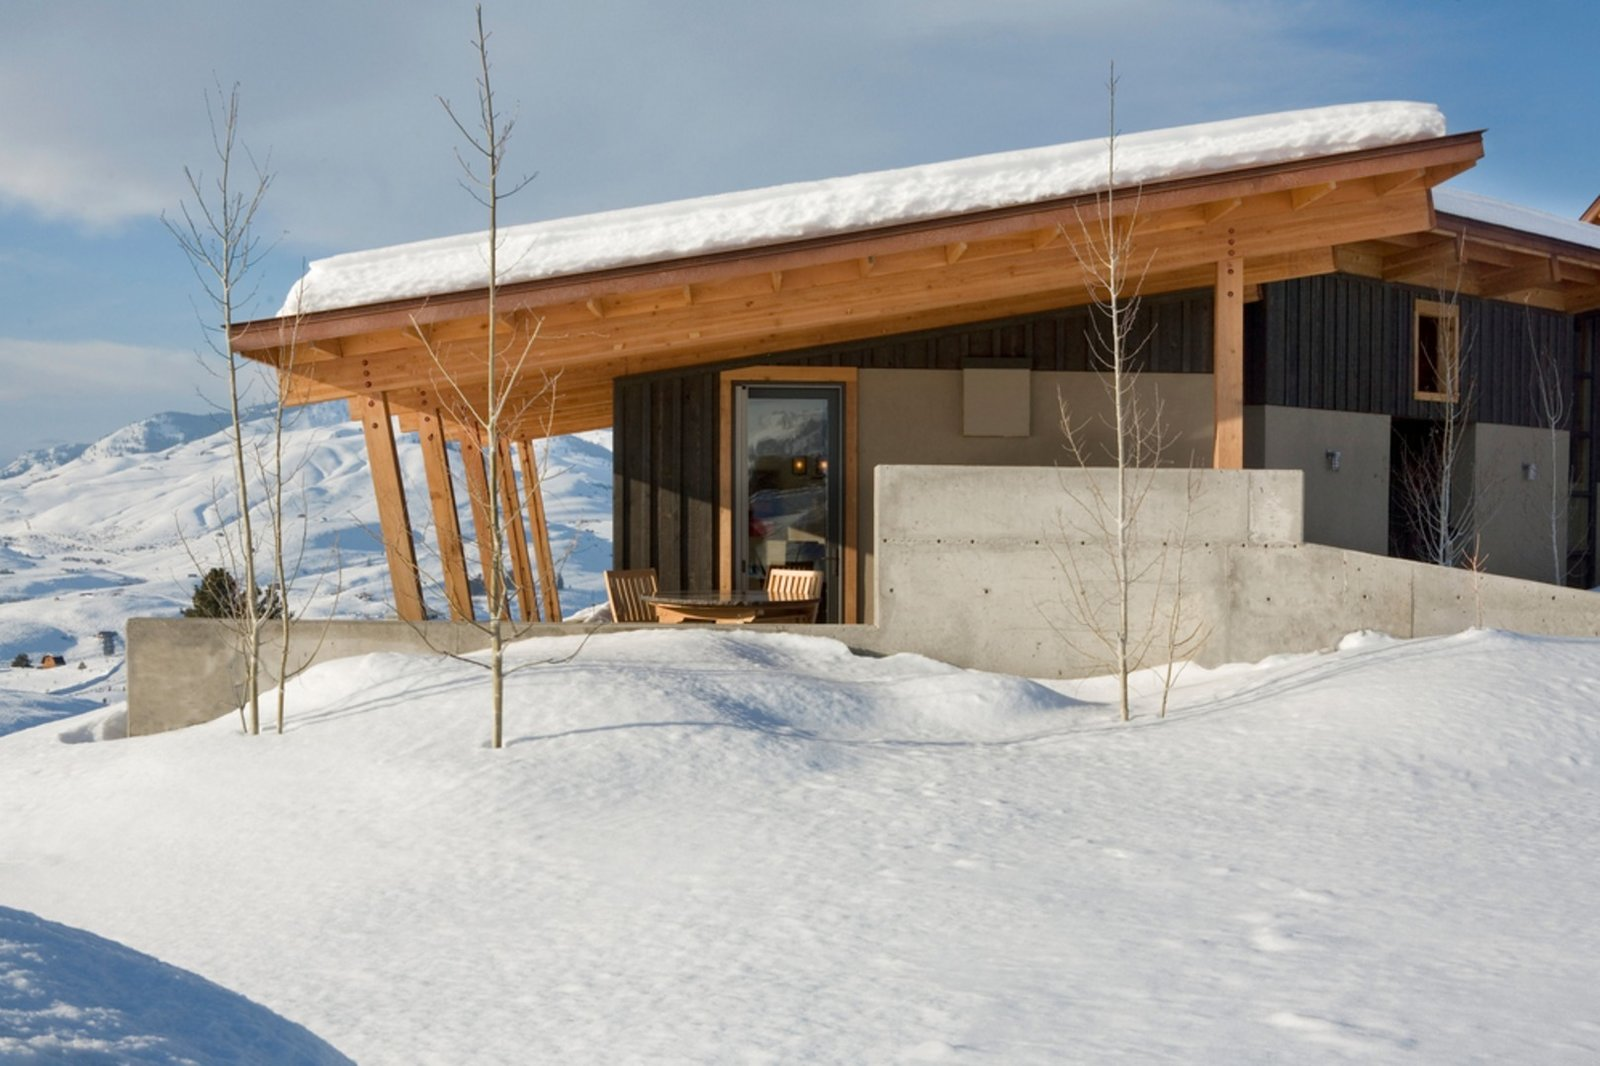 Stud Horse Mountain home in Methow Valley, WA; Architects Prentiss Balance Wickline (PBW) Architects; Photo courtesy of PBW Architects